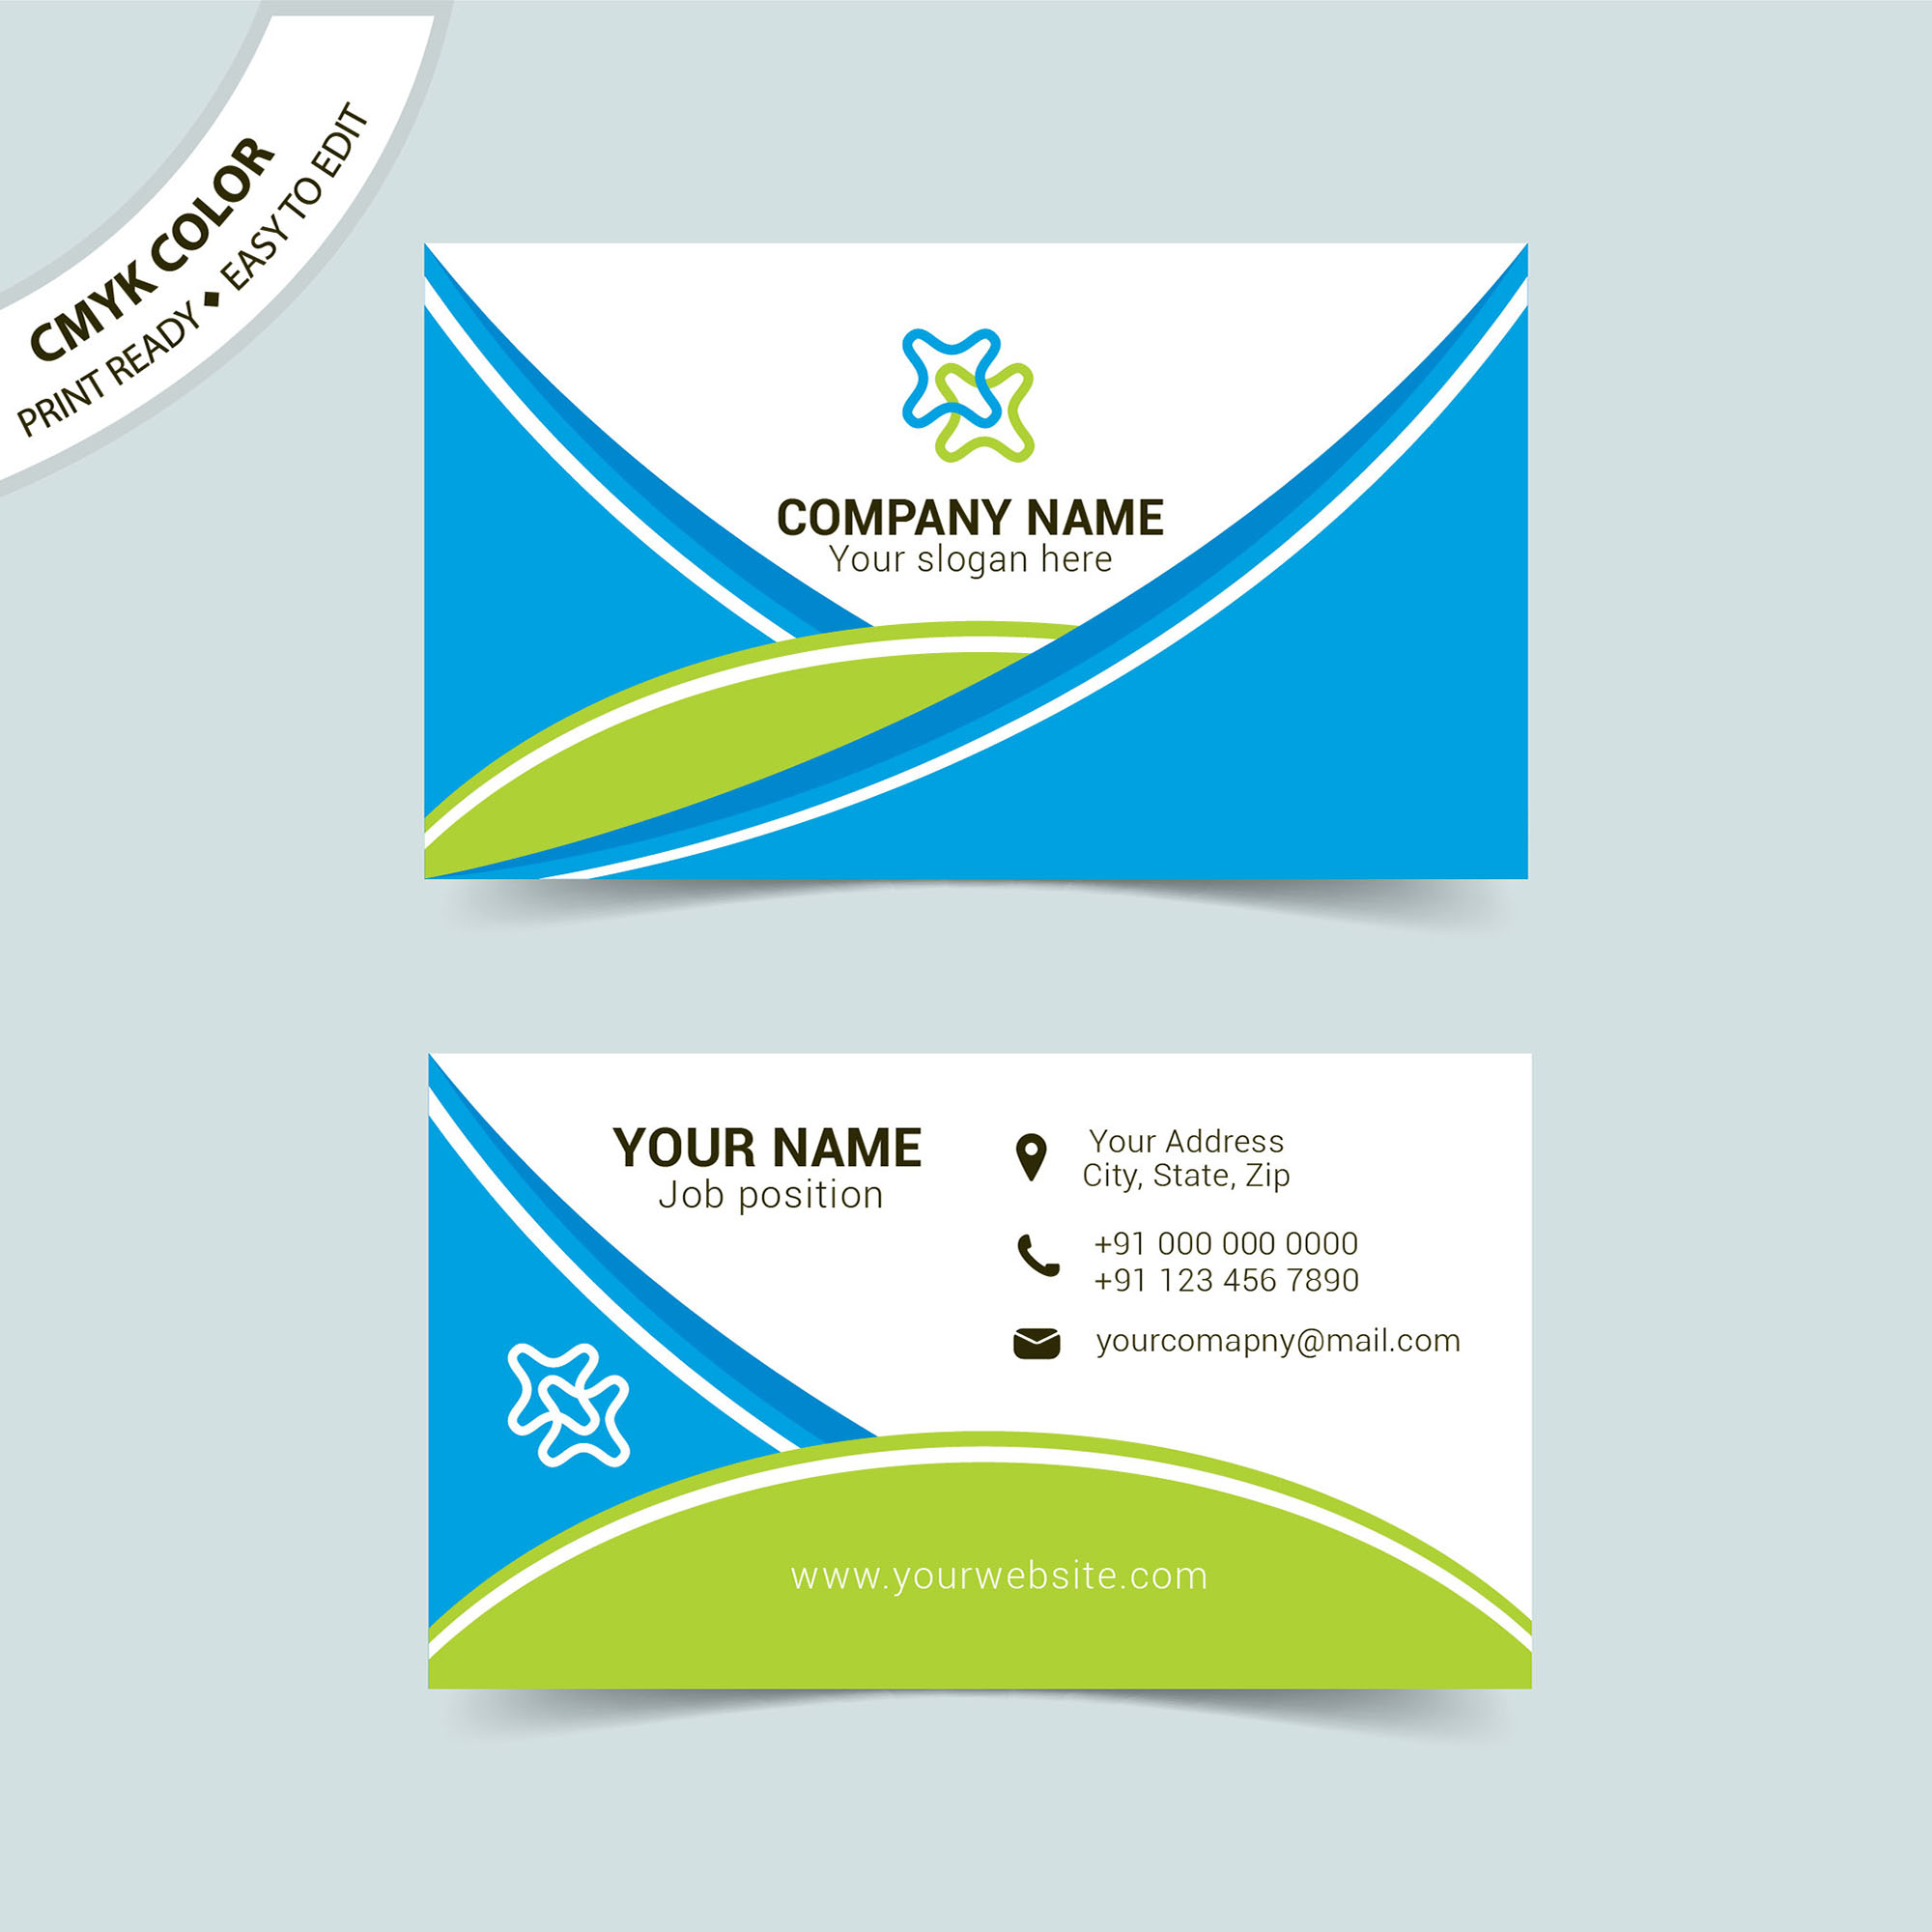 Creative business card vector template free download wisxi business card business cards business card design business card template design templates colourmoves